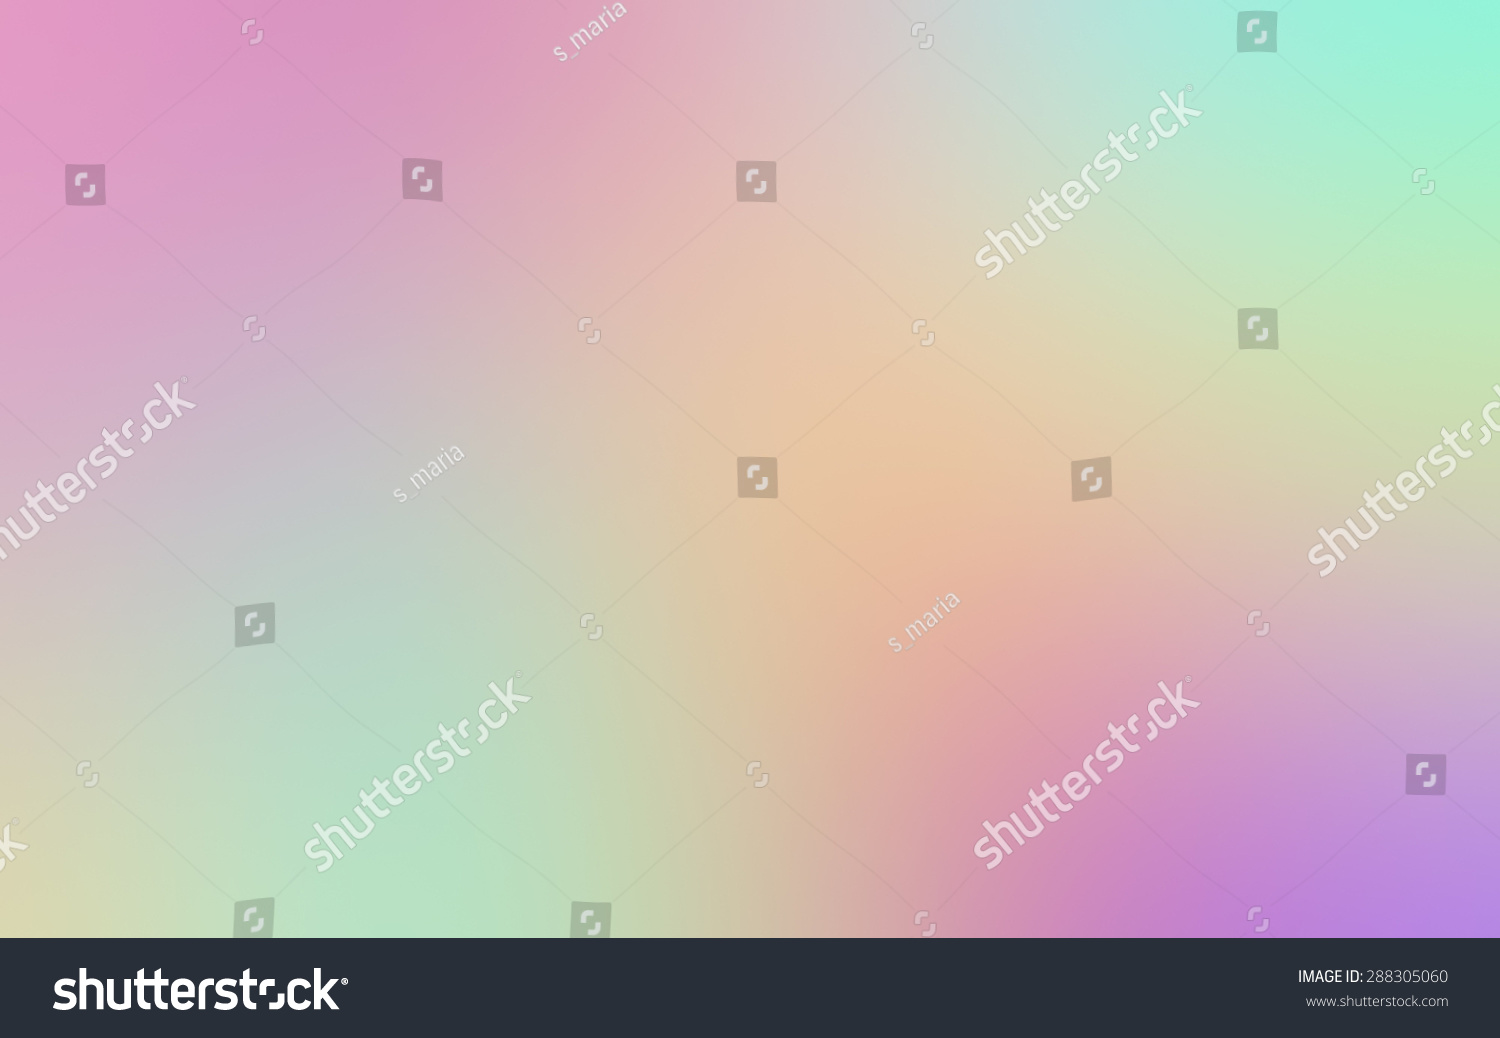 Light Abstraction Blurred Multicolor Background Pattern Wallpaper